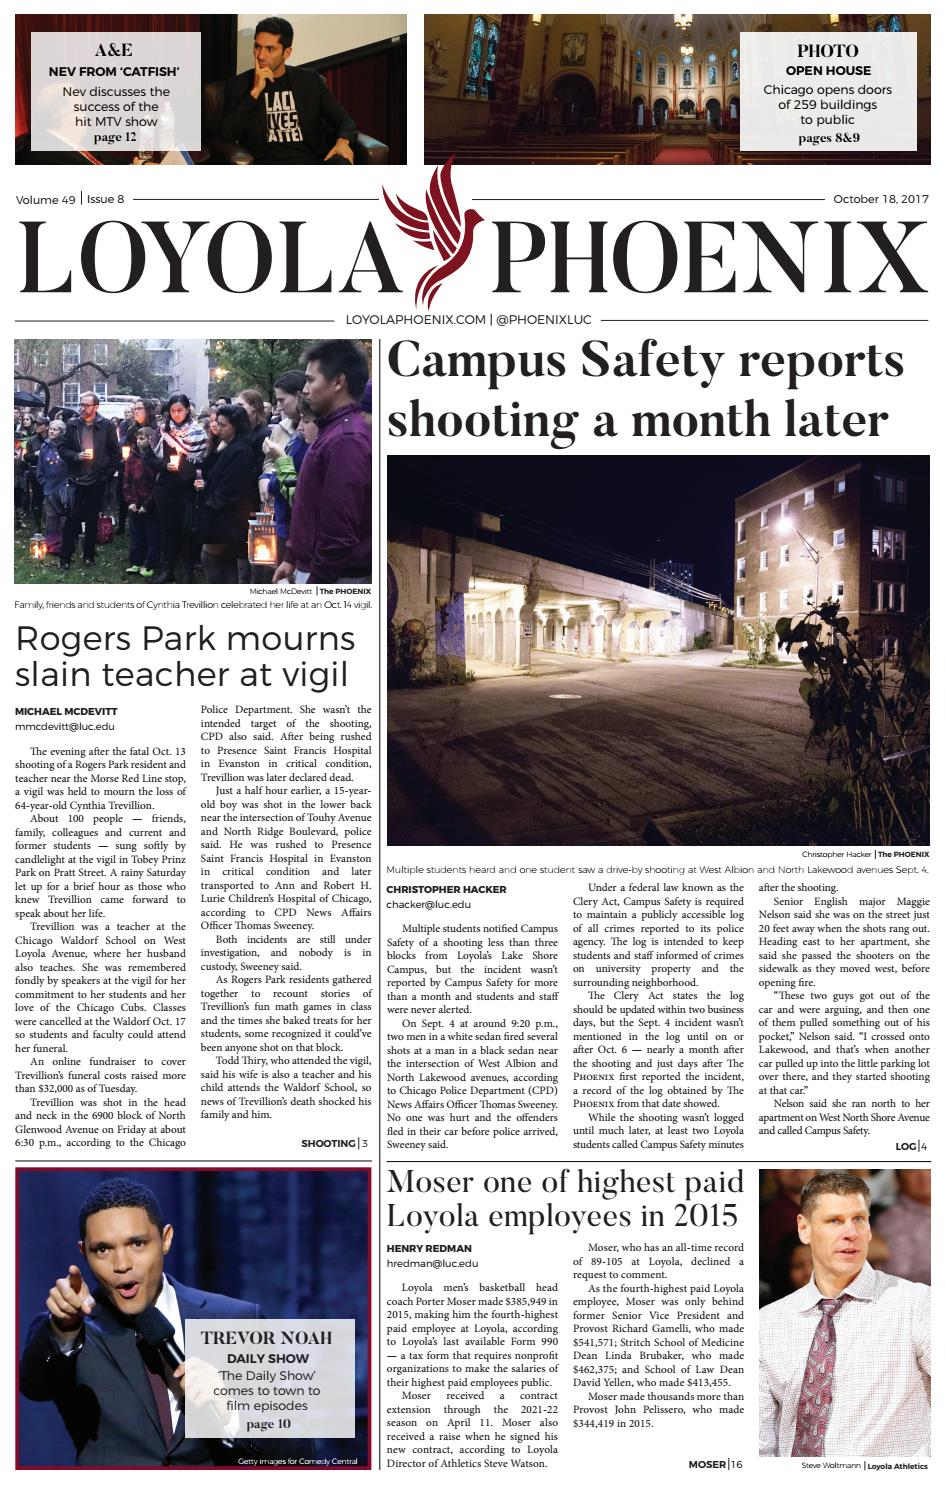 Loyola Phoenix Volume 49 Issue 8 By Loyola Phoenix Issuu